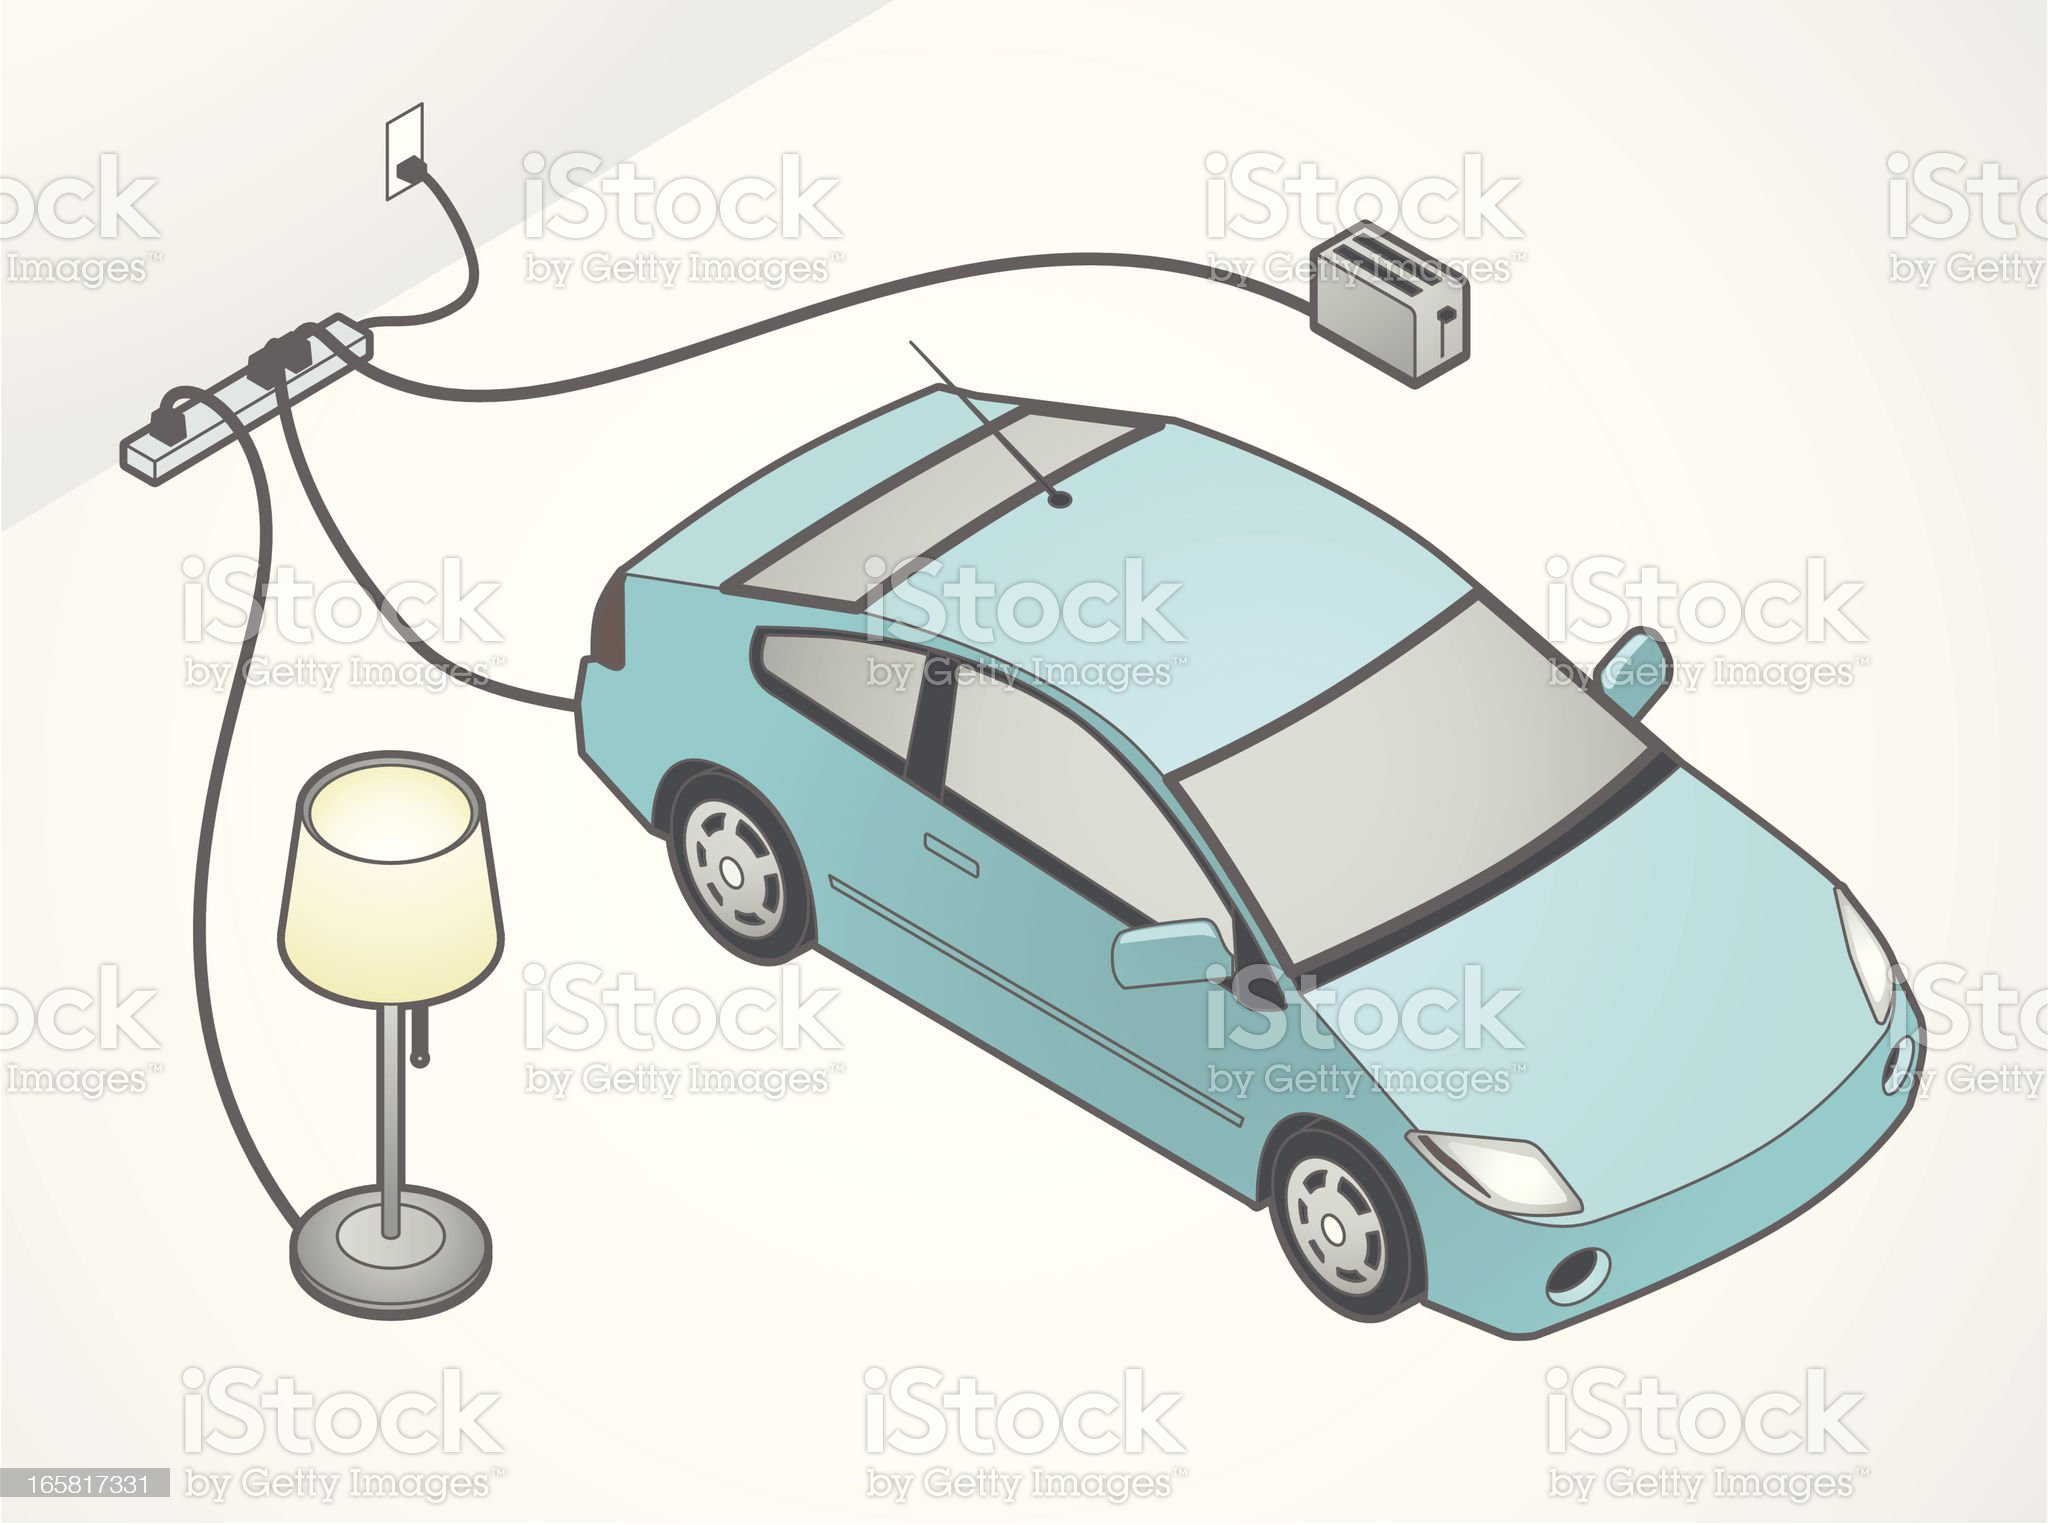 Electric Car Illustration royalty-free stock vector art